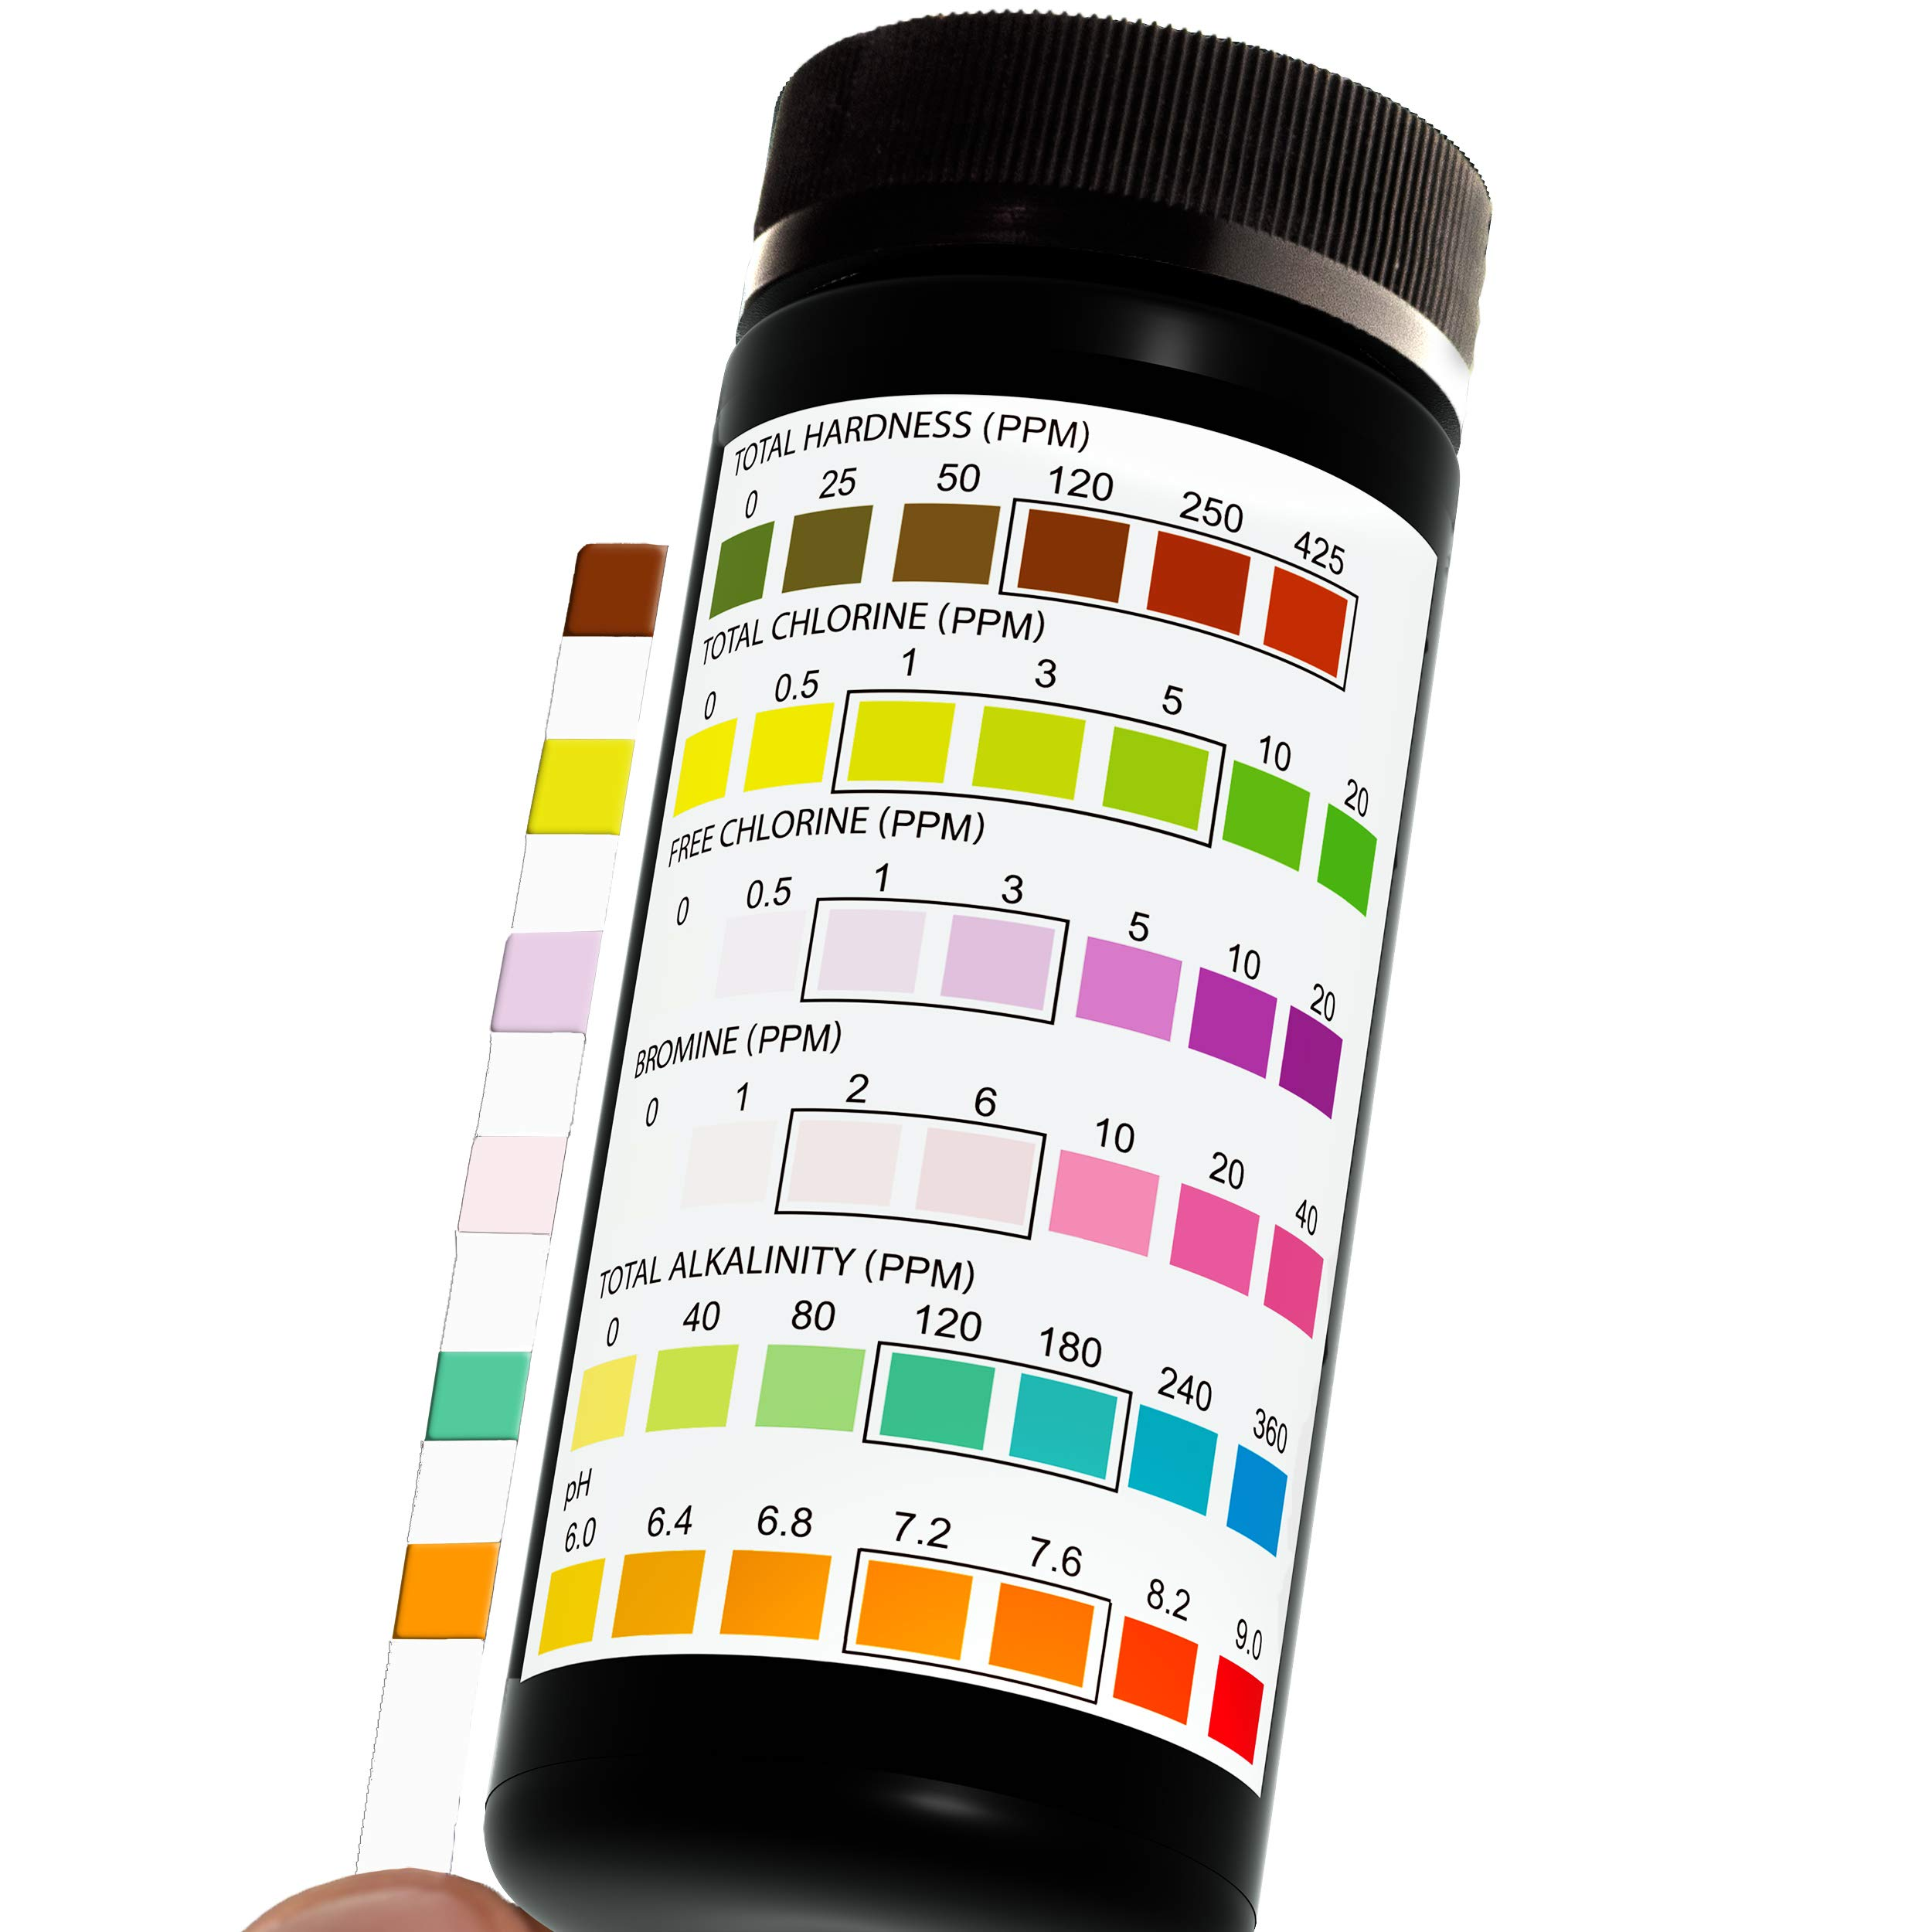 JNW Direct Pool and Spa Test Strips - 100 Strip Pack, Test pH, Chlorine, Bromine, Hardness and More, Accurate 6-in-1 Swimming Pool Water Testing, Free App & Ebook Included